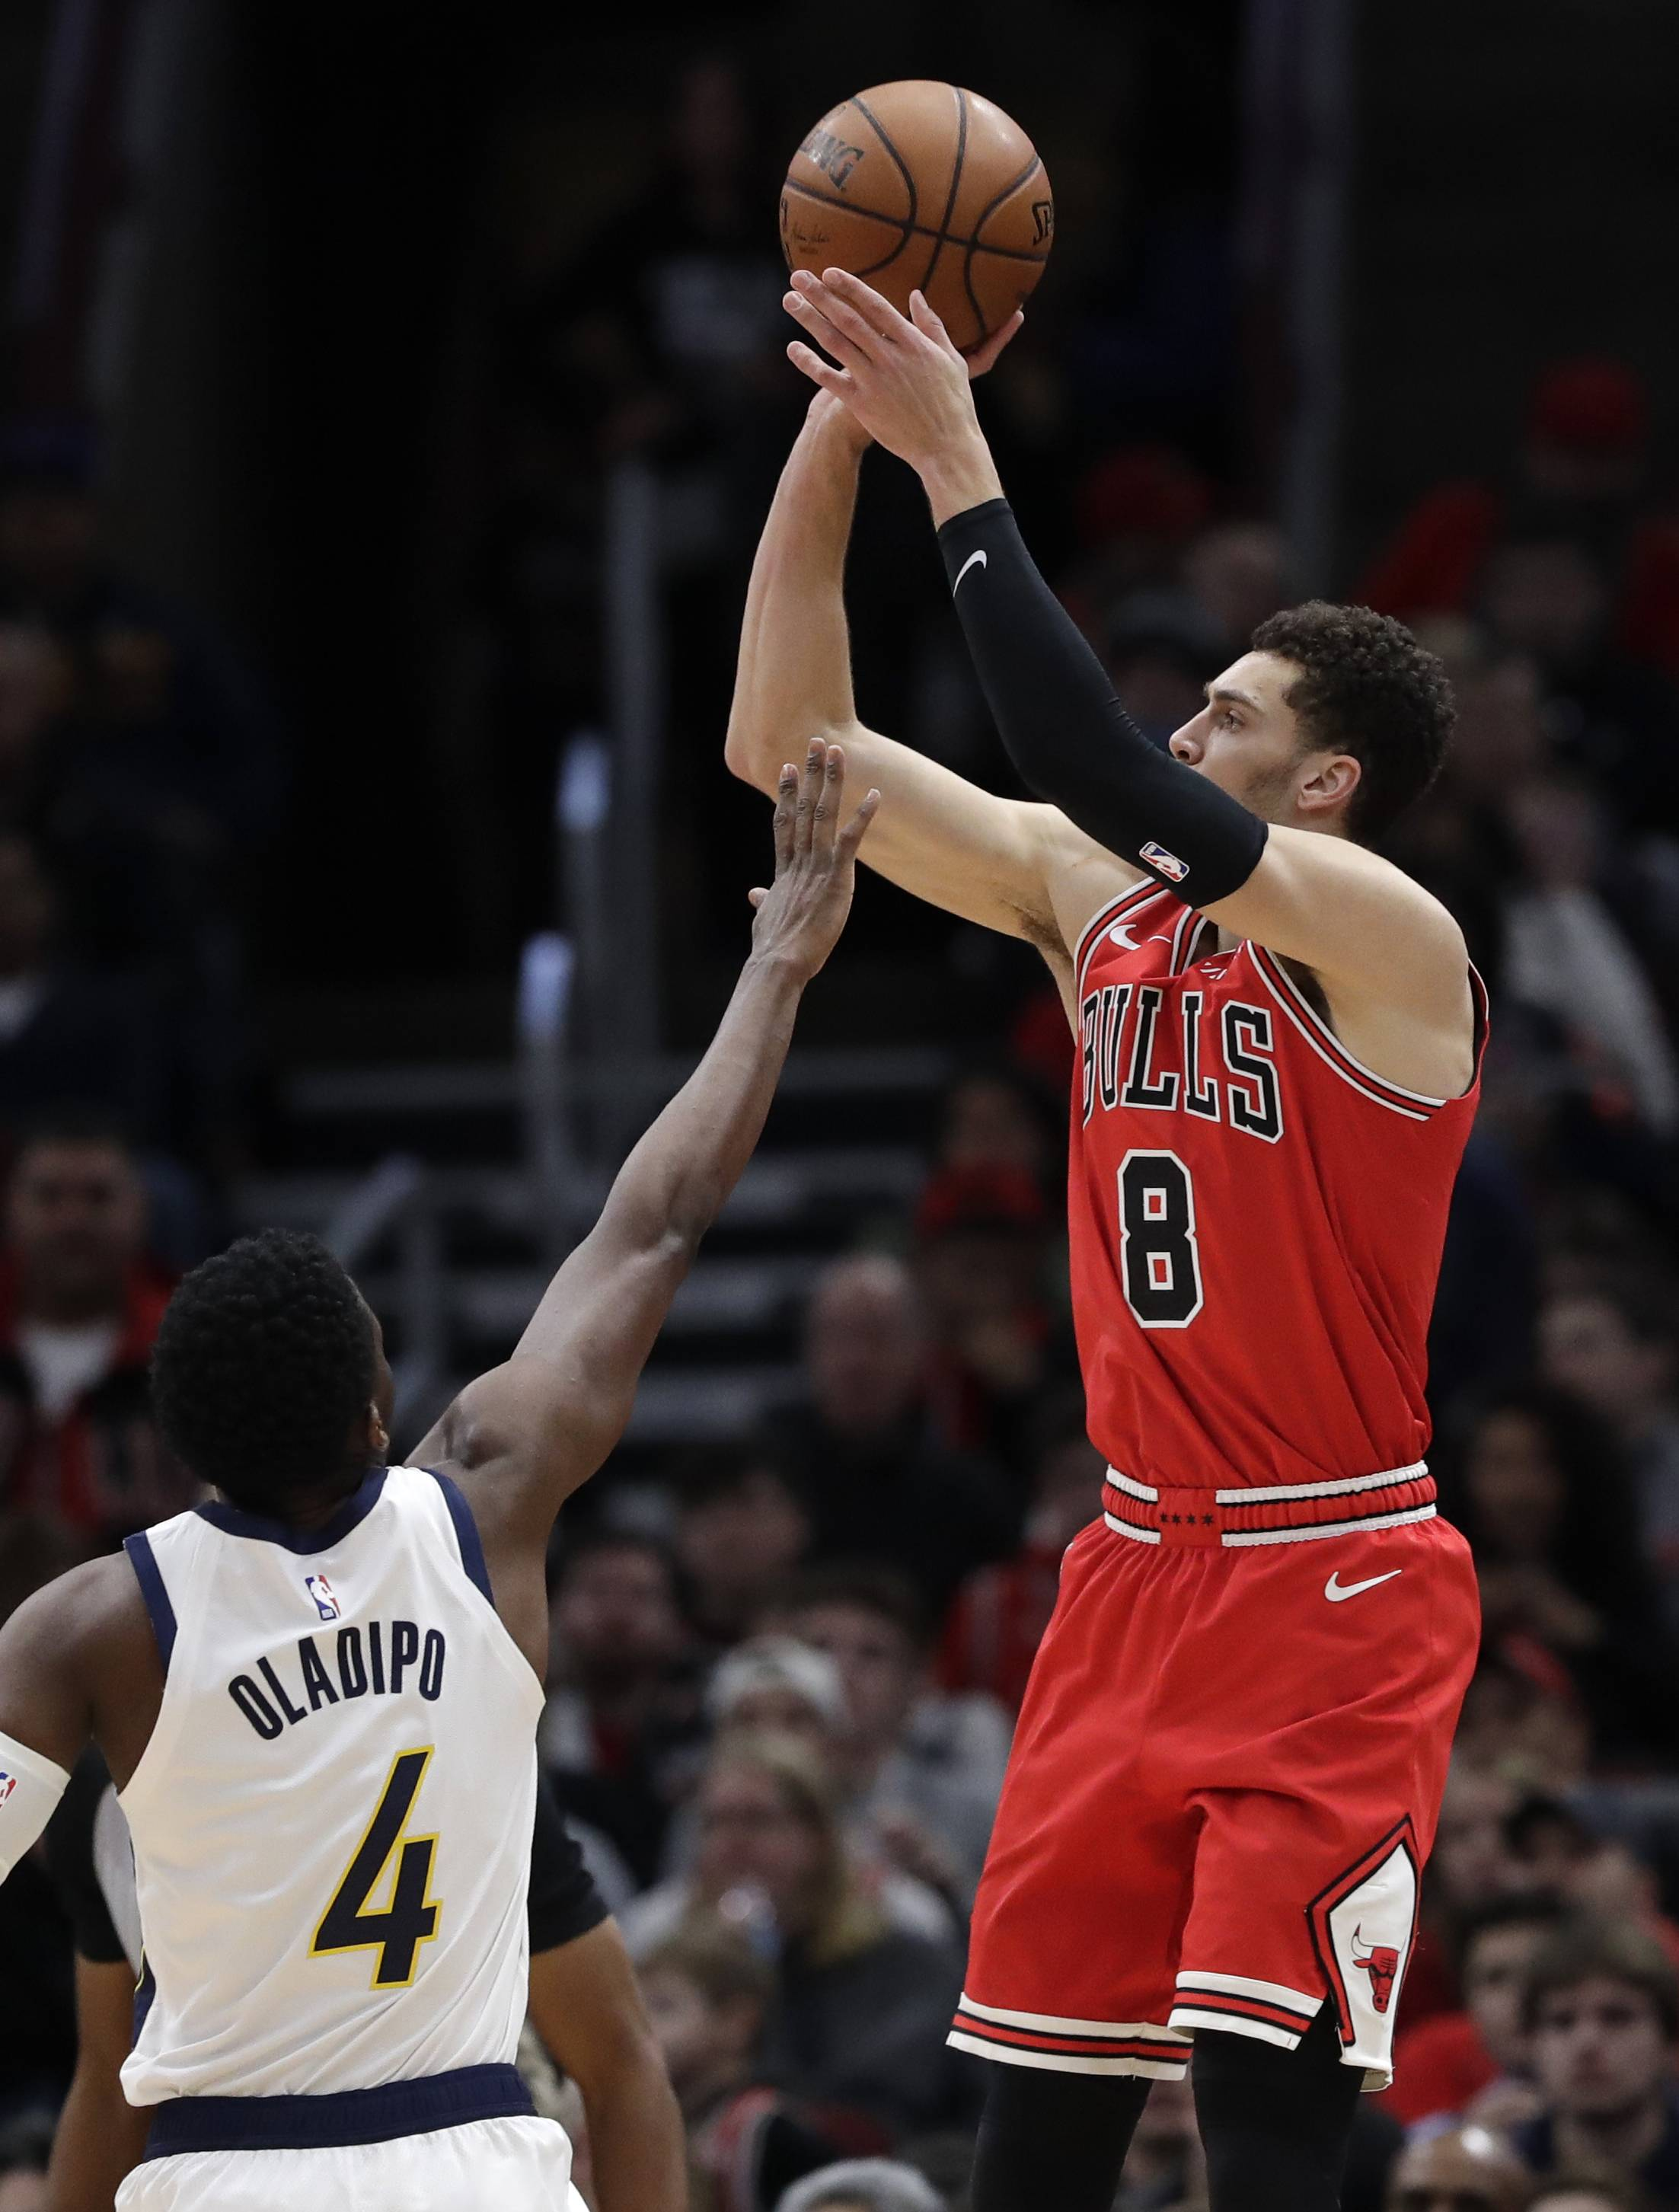 Bulls fall one short in battle of clutch shots vs. Pacers